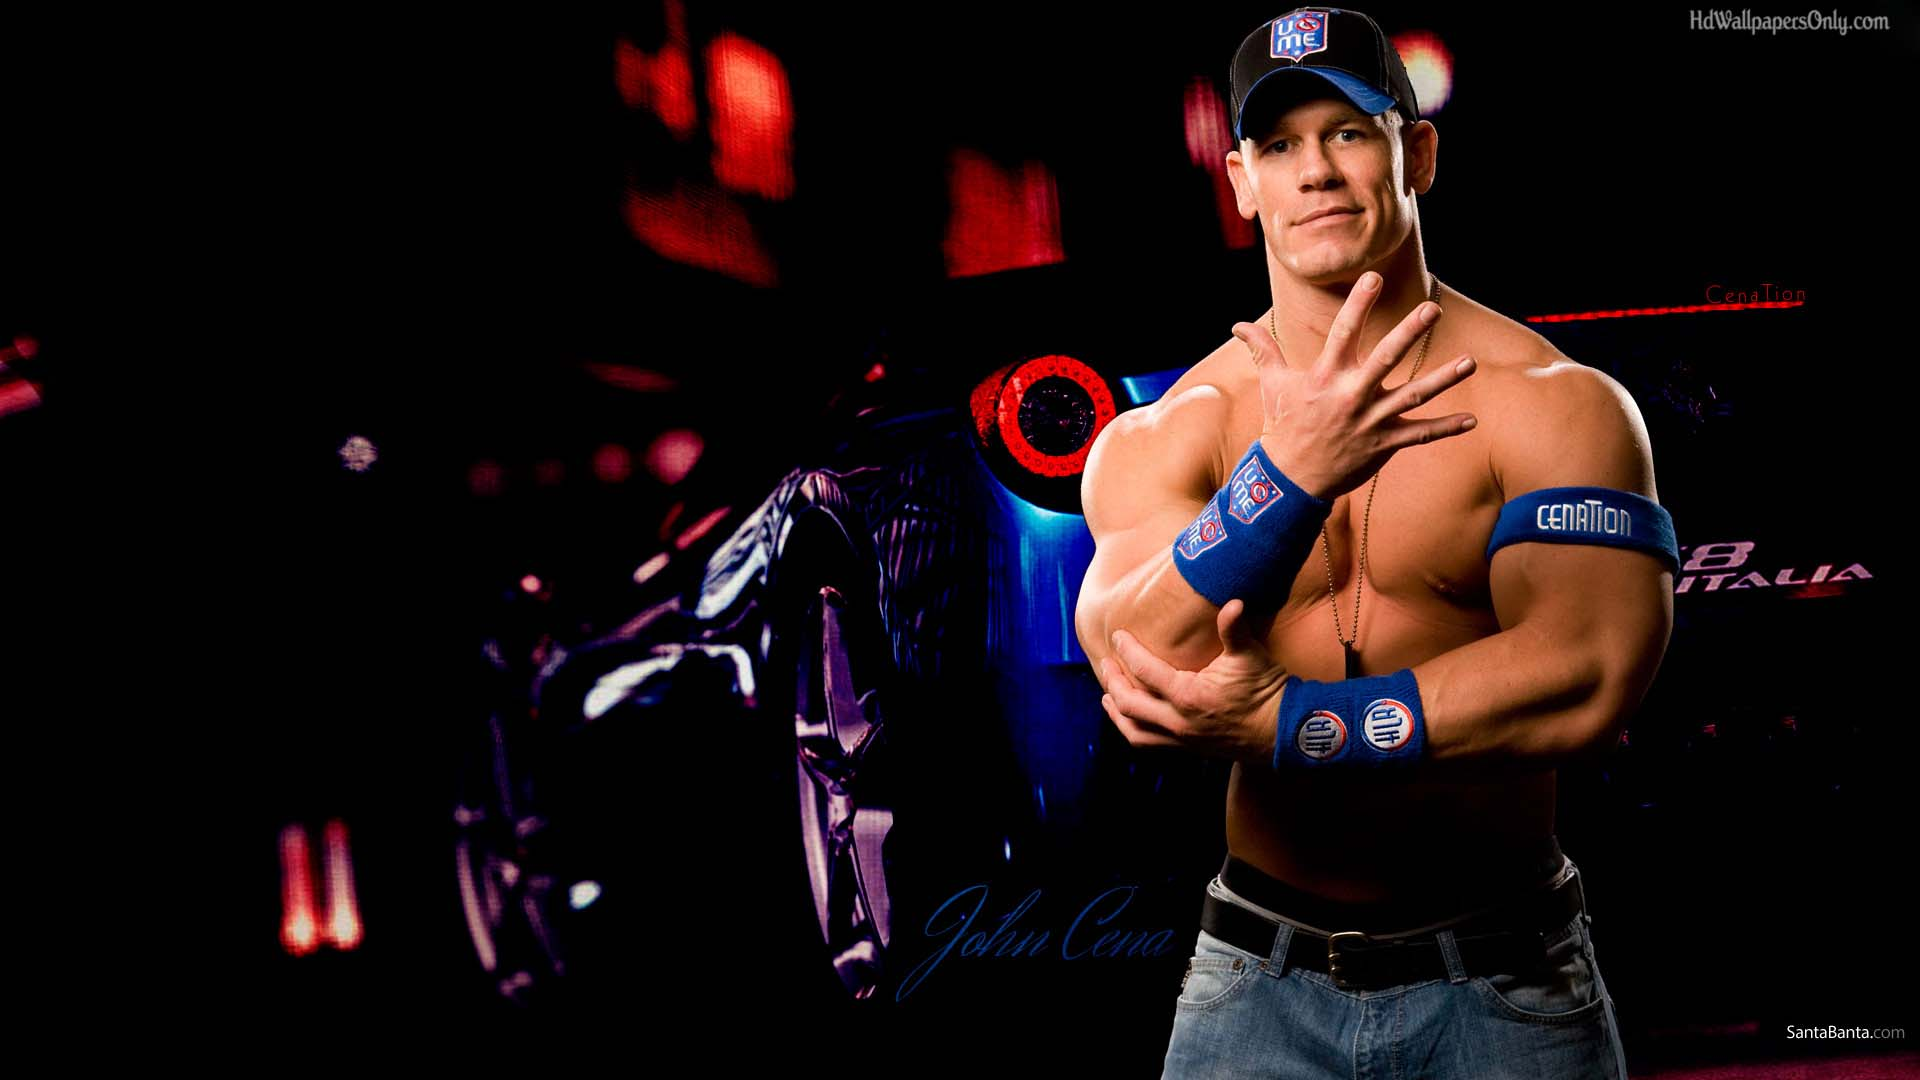 John Cena HD Wallpapers 2014